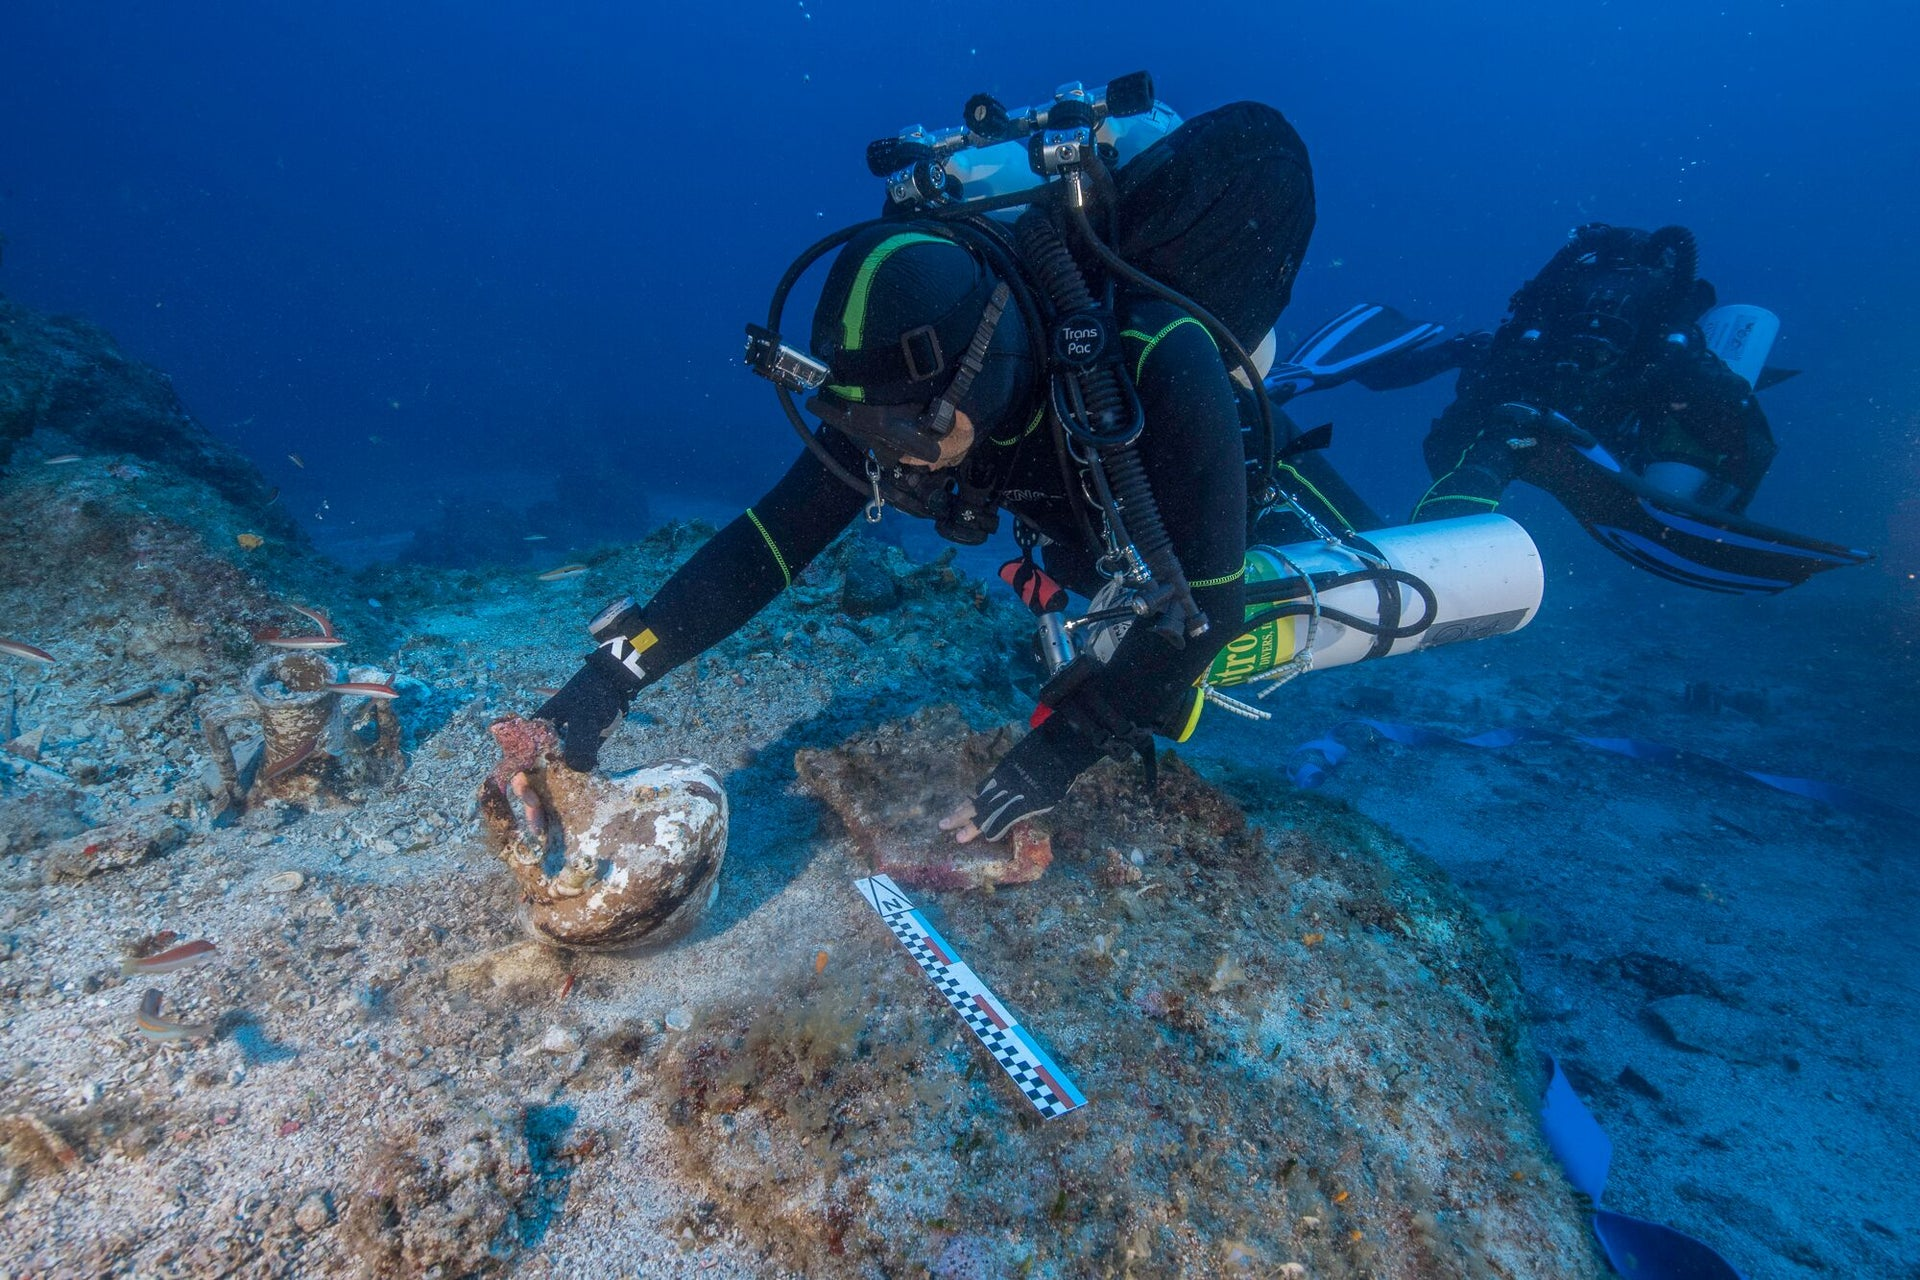 Diver lifting amphora that possibly contained wine or perfume. The transport amphora's originates from Ephesus, Pergamum and the islands of Rhodes and Kos